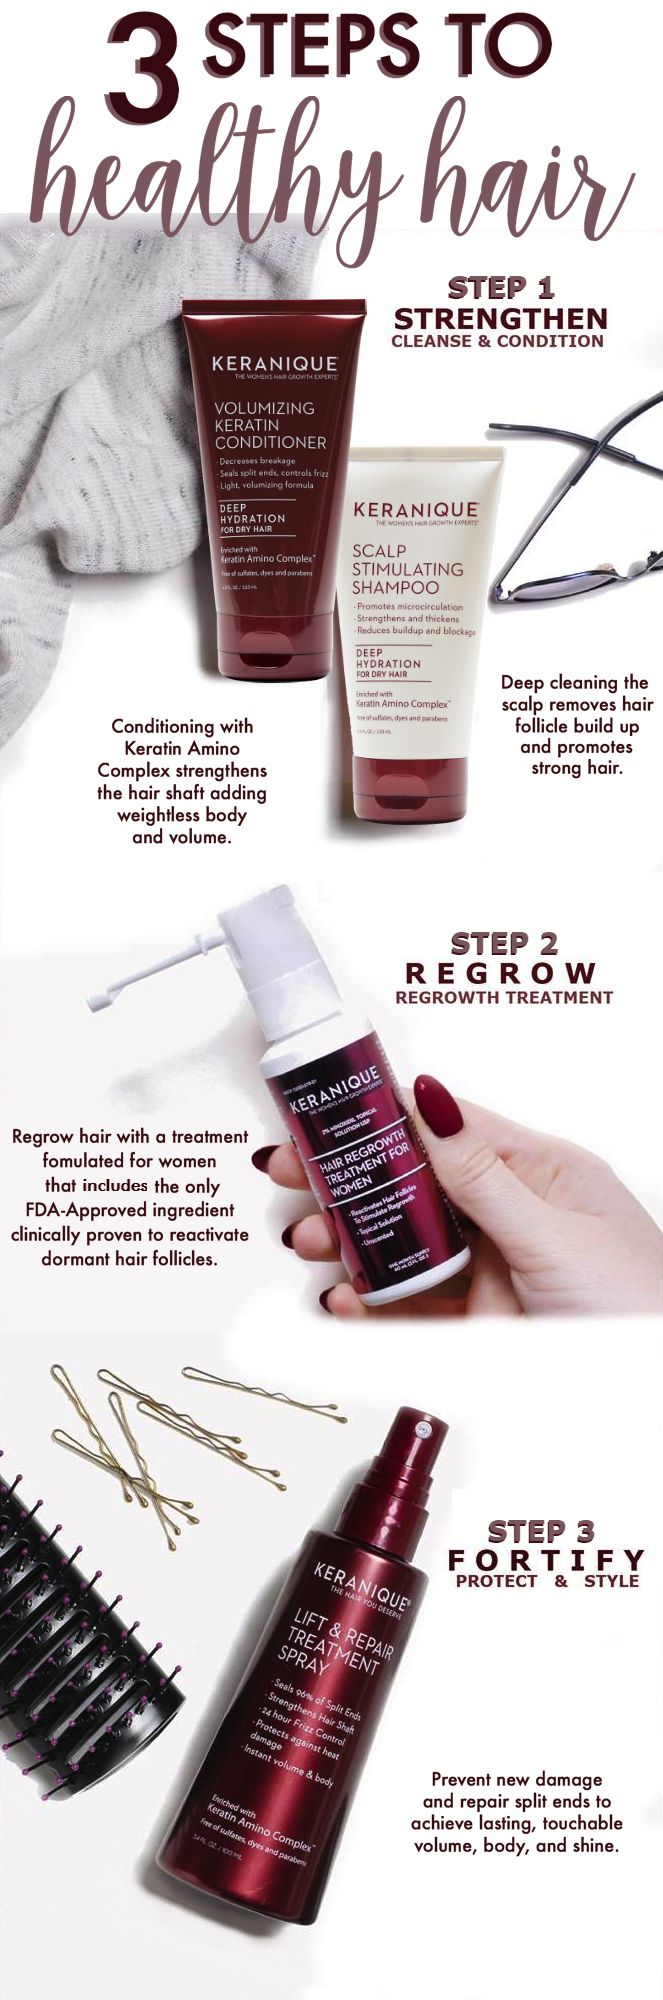 Thicker, fuller, healthier hair is only 3 steps away! The clinically proven Keranique® Hair Regrowth System for $49.95.  Step up your self-care routine to regrow, strengthen, fortify and thicken your hair for the beautiful, full head of hair all women deserve and desire. Over 1 million women have trusted Keranique® to help them fight hair loss, hair thinning and hair breakage. Try this easy to use, comprehensive, three step approach to boost your scalp & hair health today!